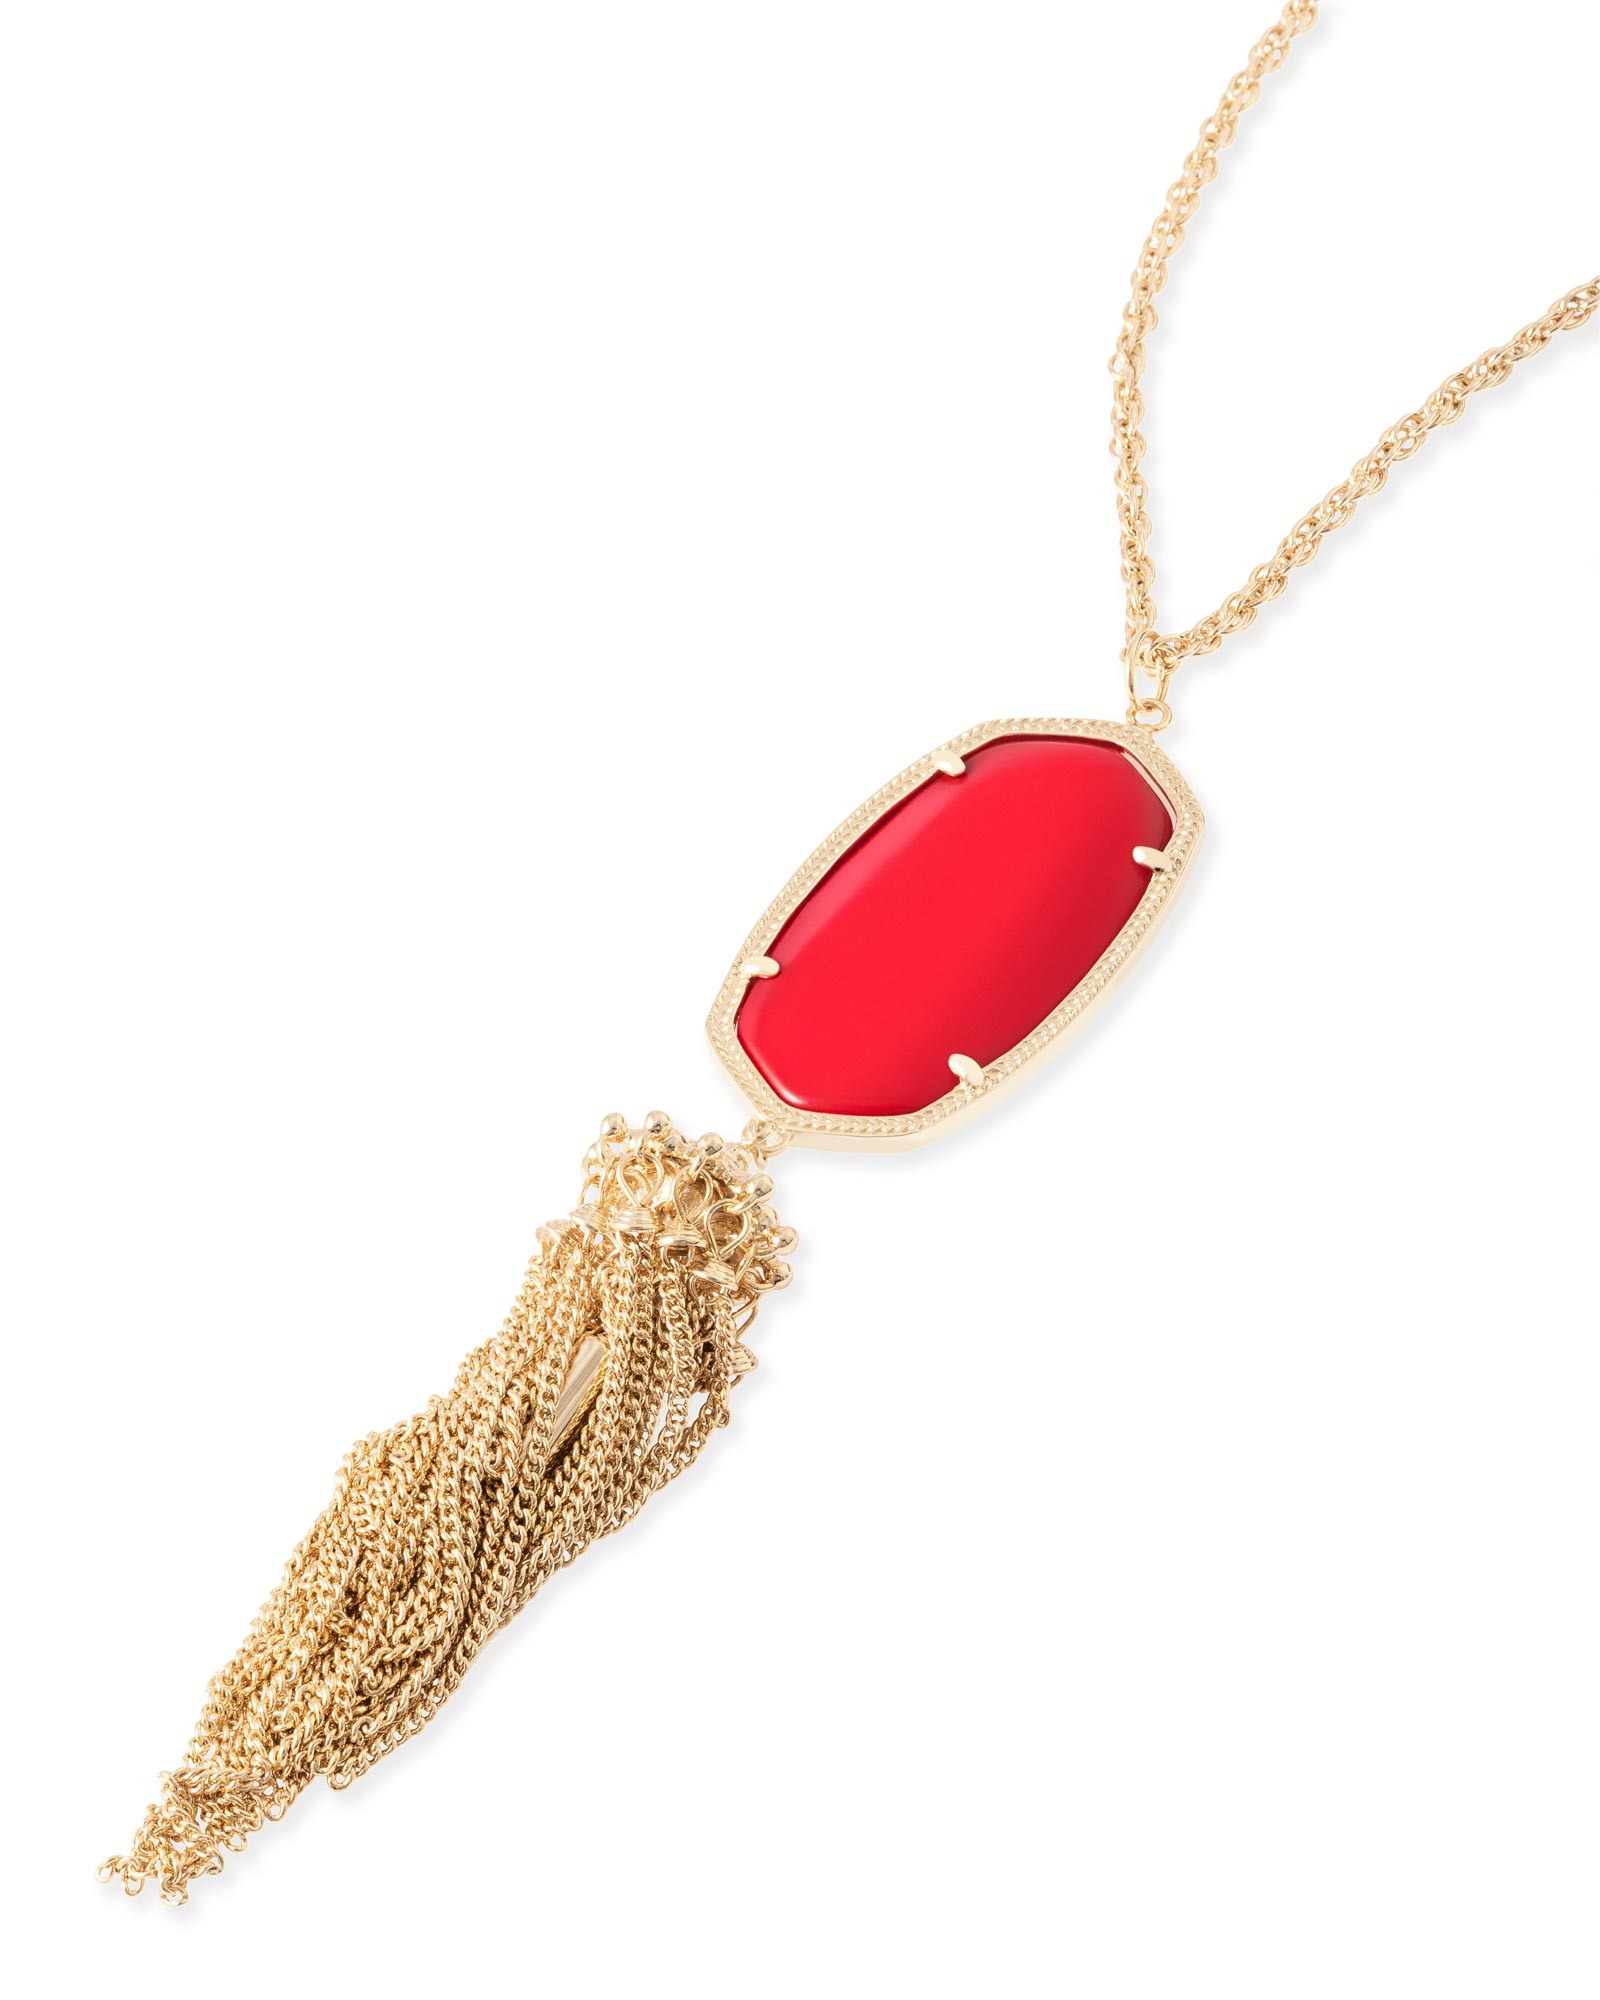 Rayne Necklace in Bright Red